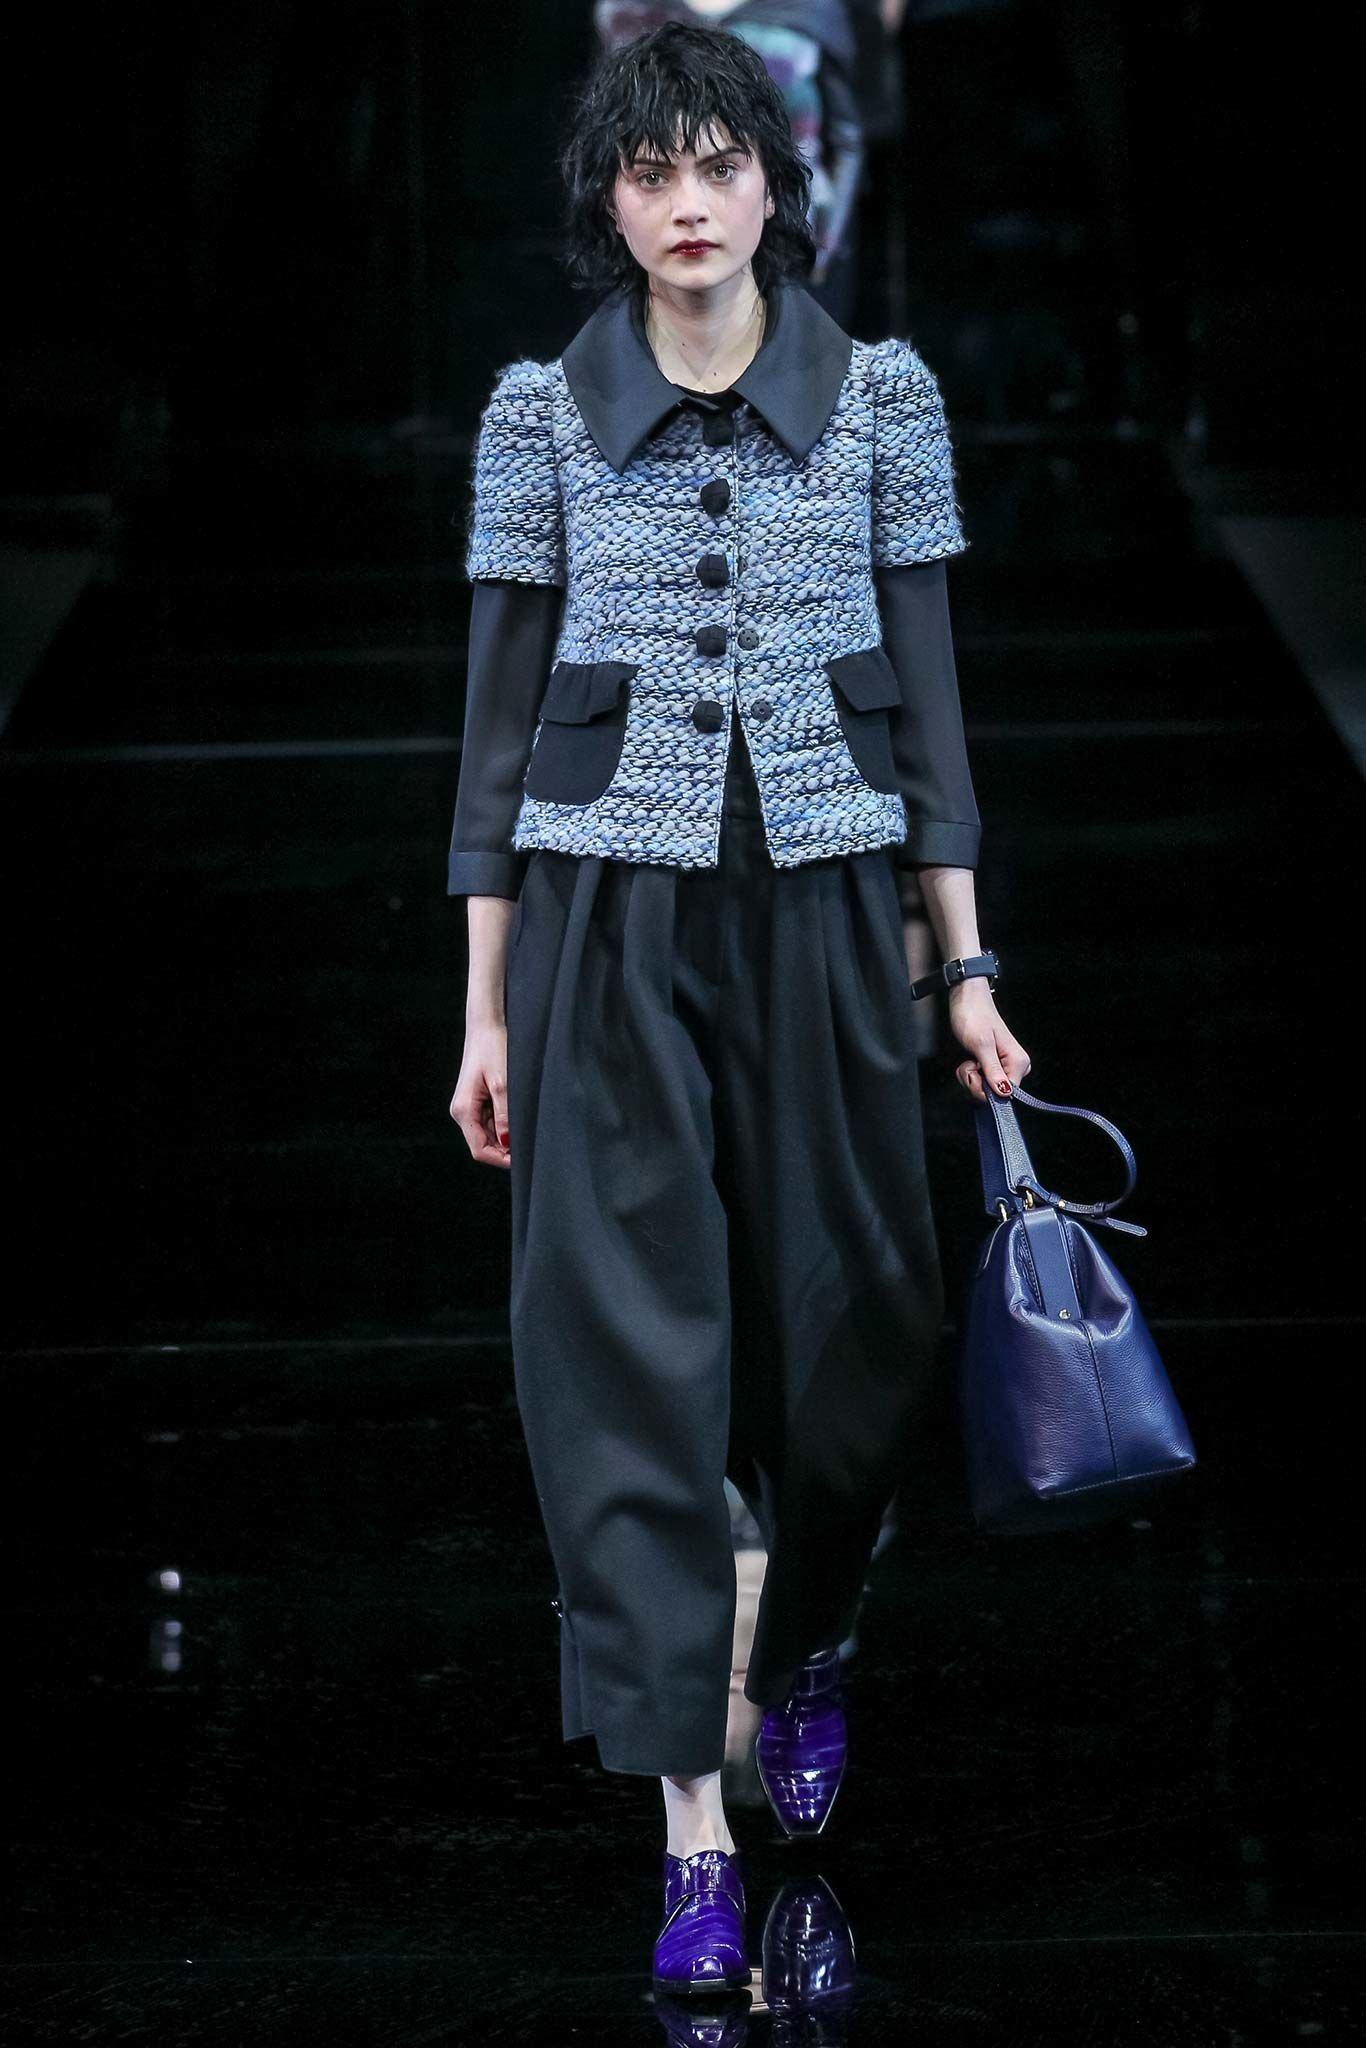 #Farbbberatung #Stilberatung #Farbenreich mit www.farben-reich.com look 2 - Emporio Armani Fall 2015 Ready-to-Wear Collection Photos - Vogue